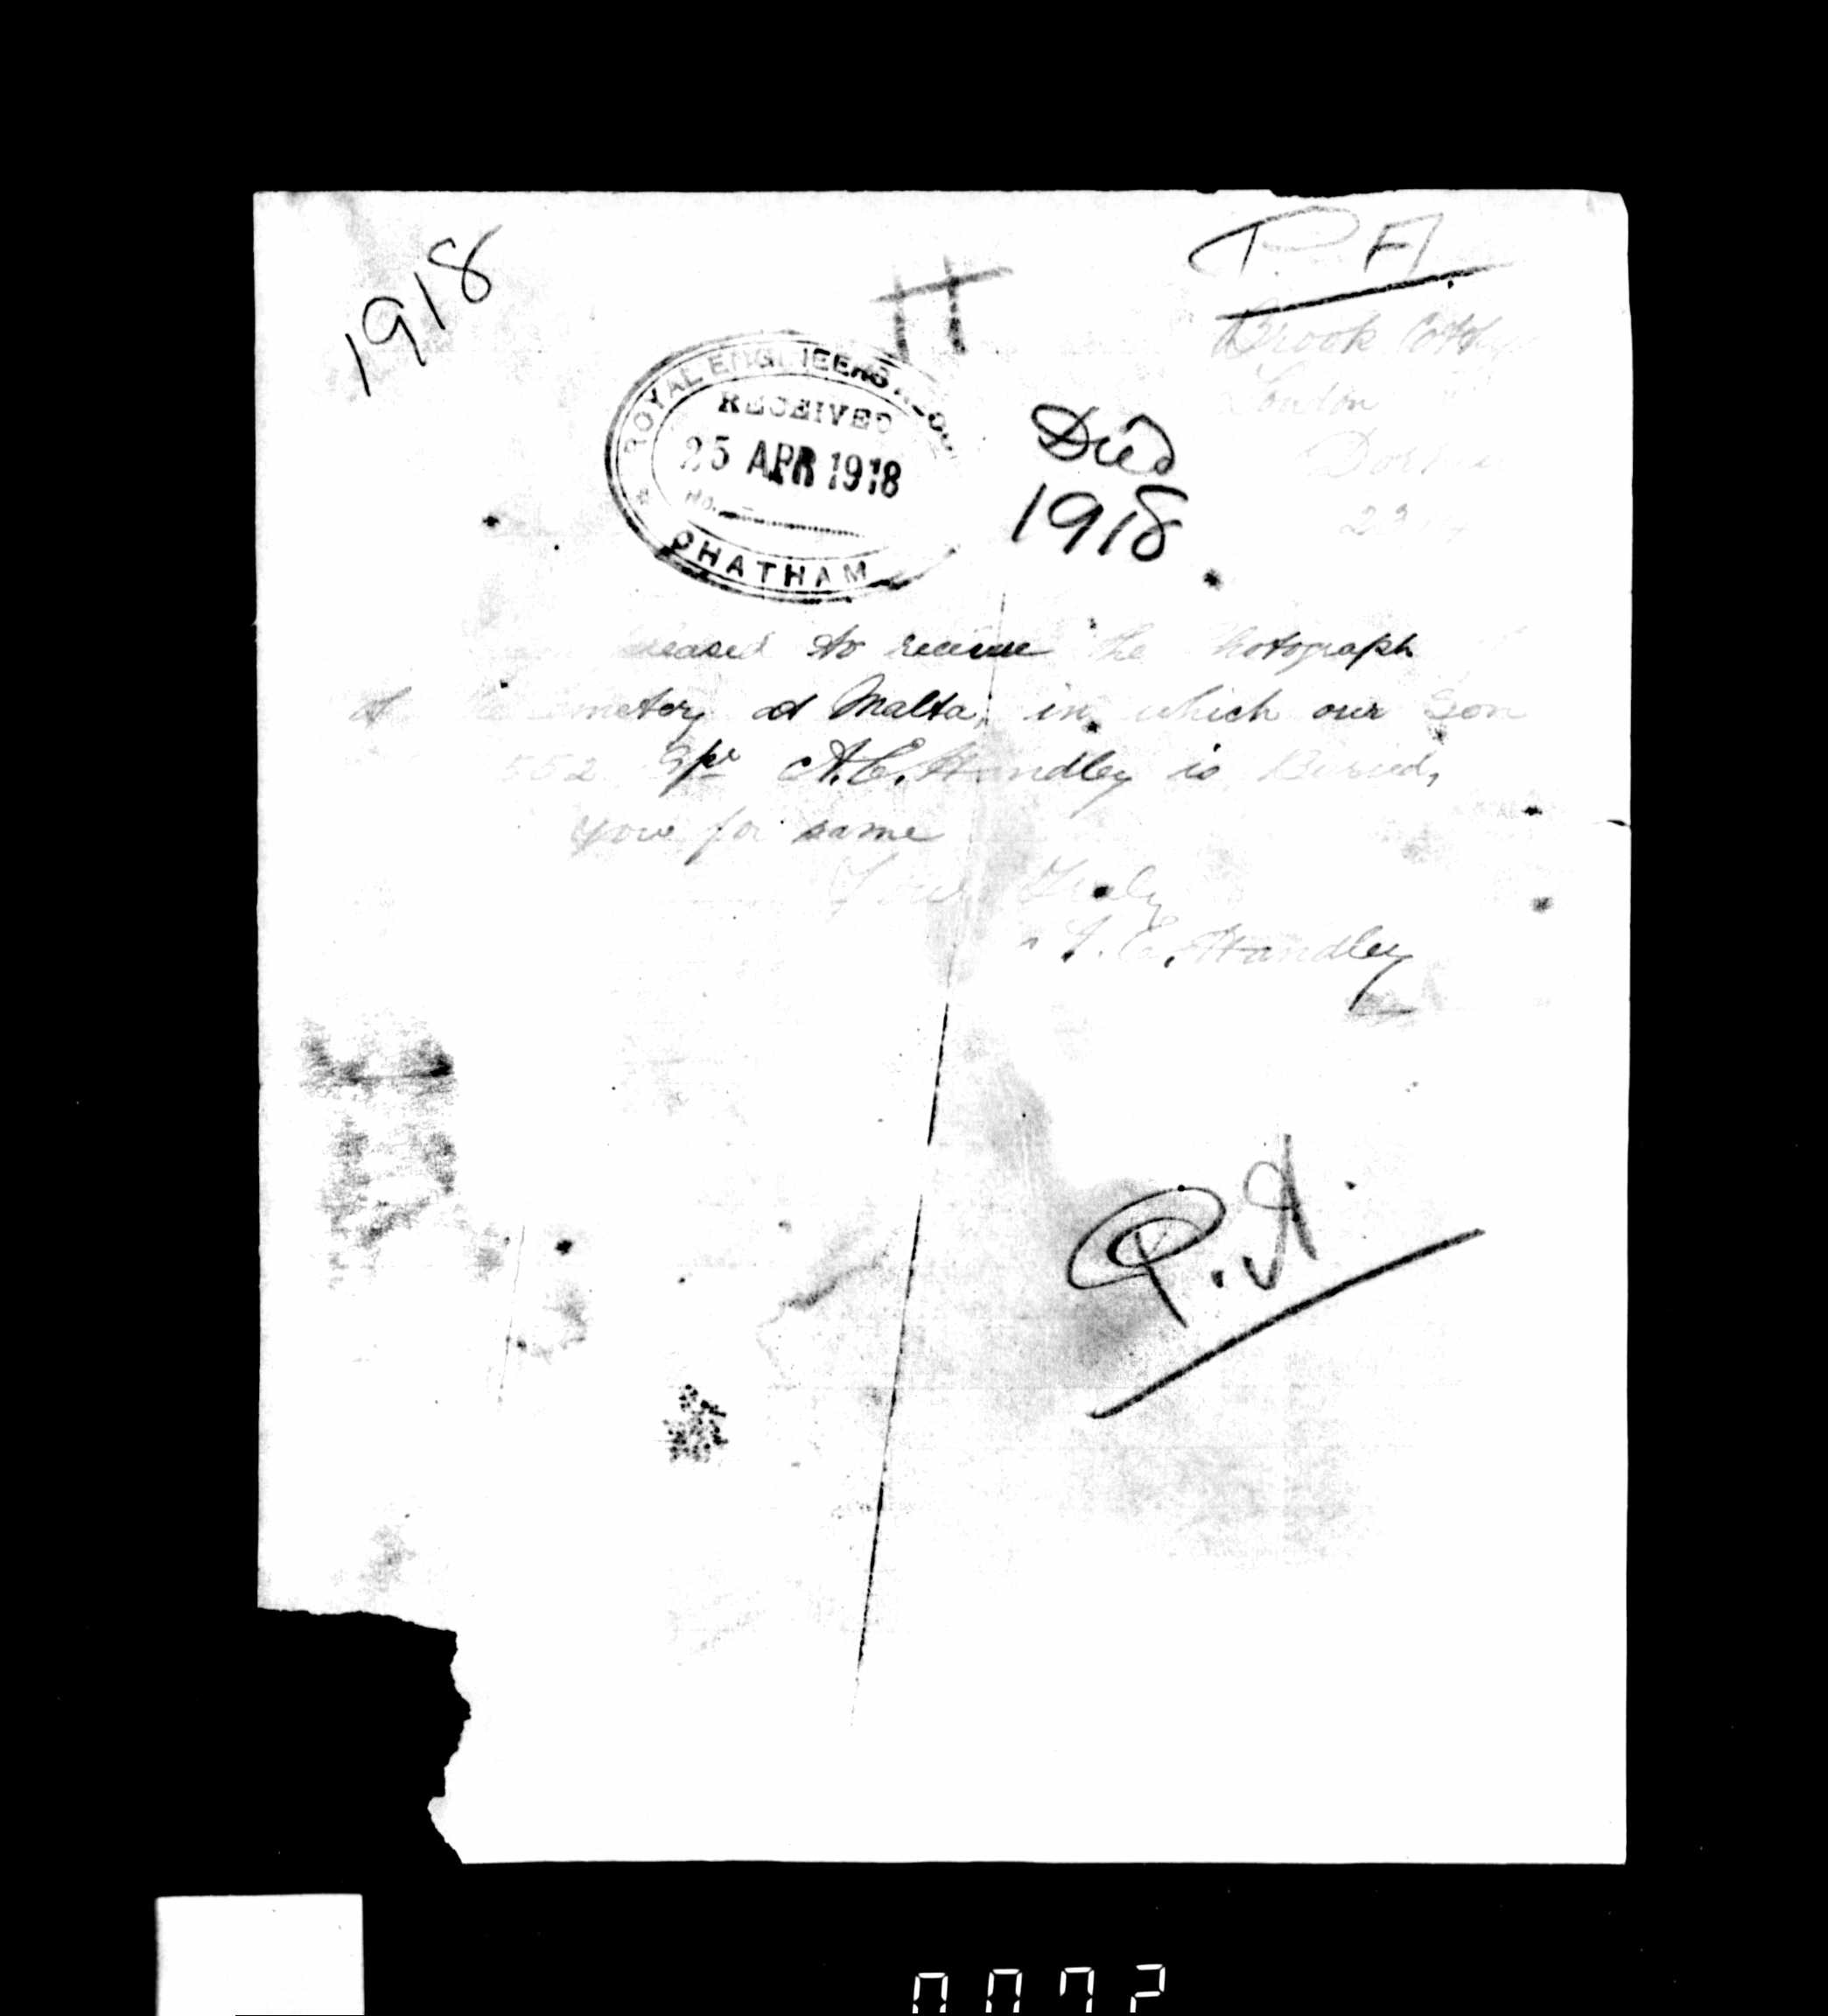 albert ernest handley army service records pt  4 � territorial force  attestation ancestry co uk